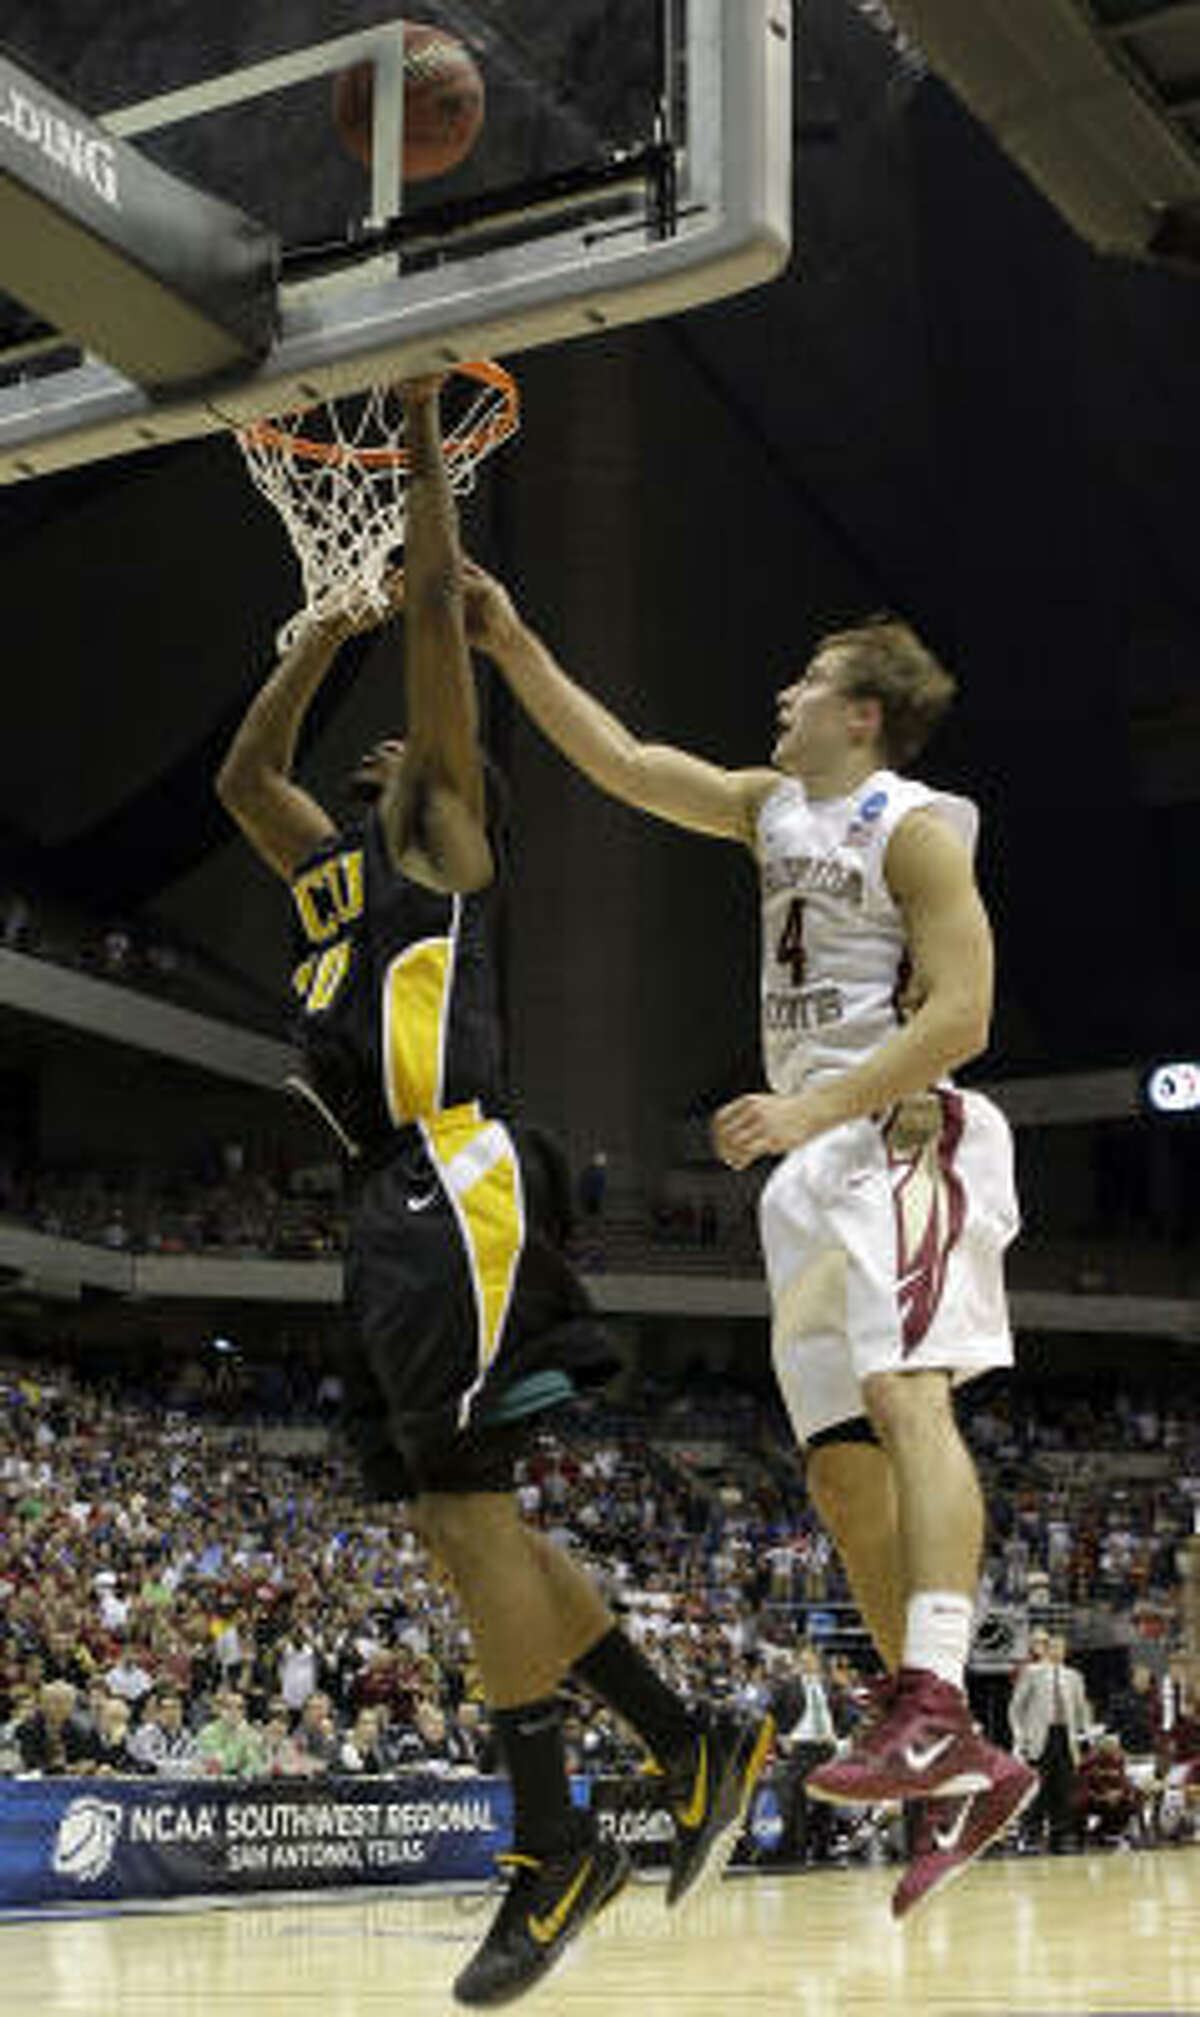 Virginia Commonwealth's Bradford Burgess makes the winning shot as Florida State's Deividas Dulkys defends during the overtime at a Southwest regional semifinal game. VCU won 72-71. The 11th-seeded Rams are advancing to their first Elite Eight.